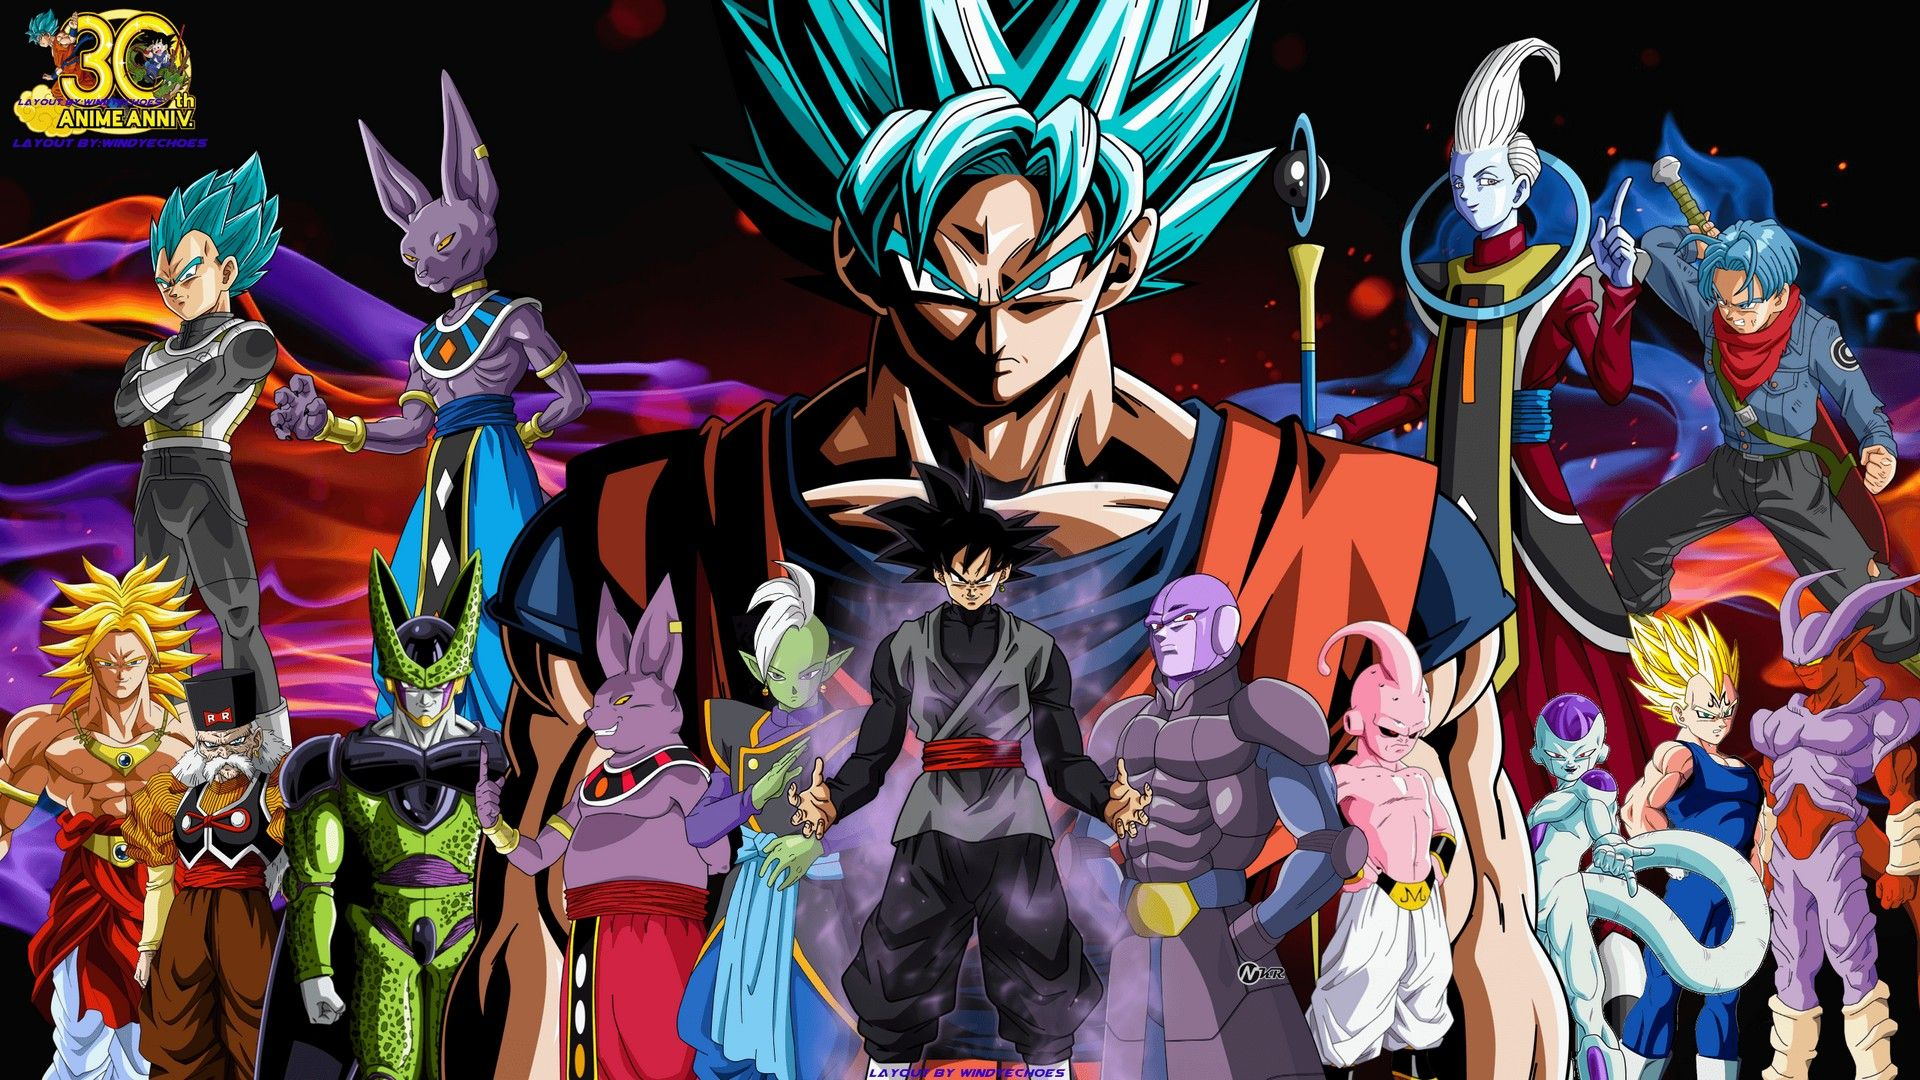 Dragon Ball Super Wallpaper Full HD Dragon ball super